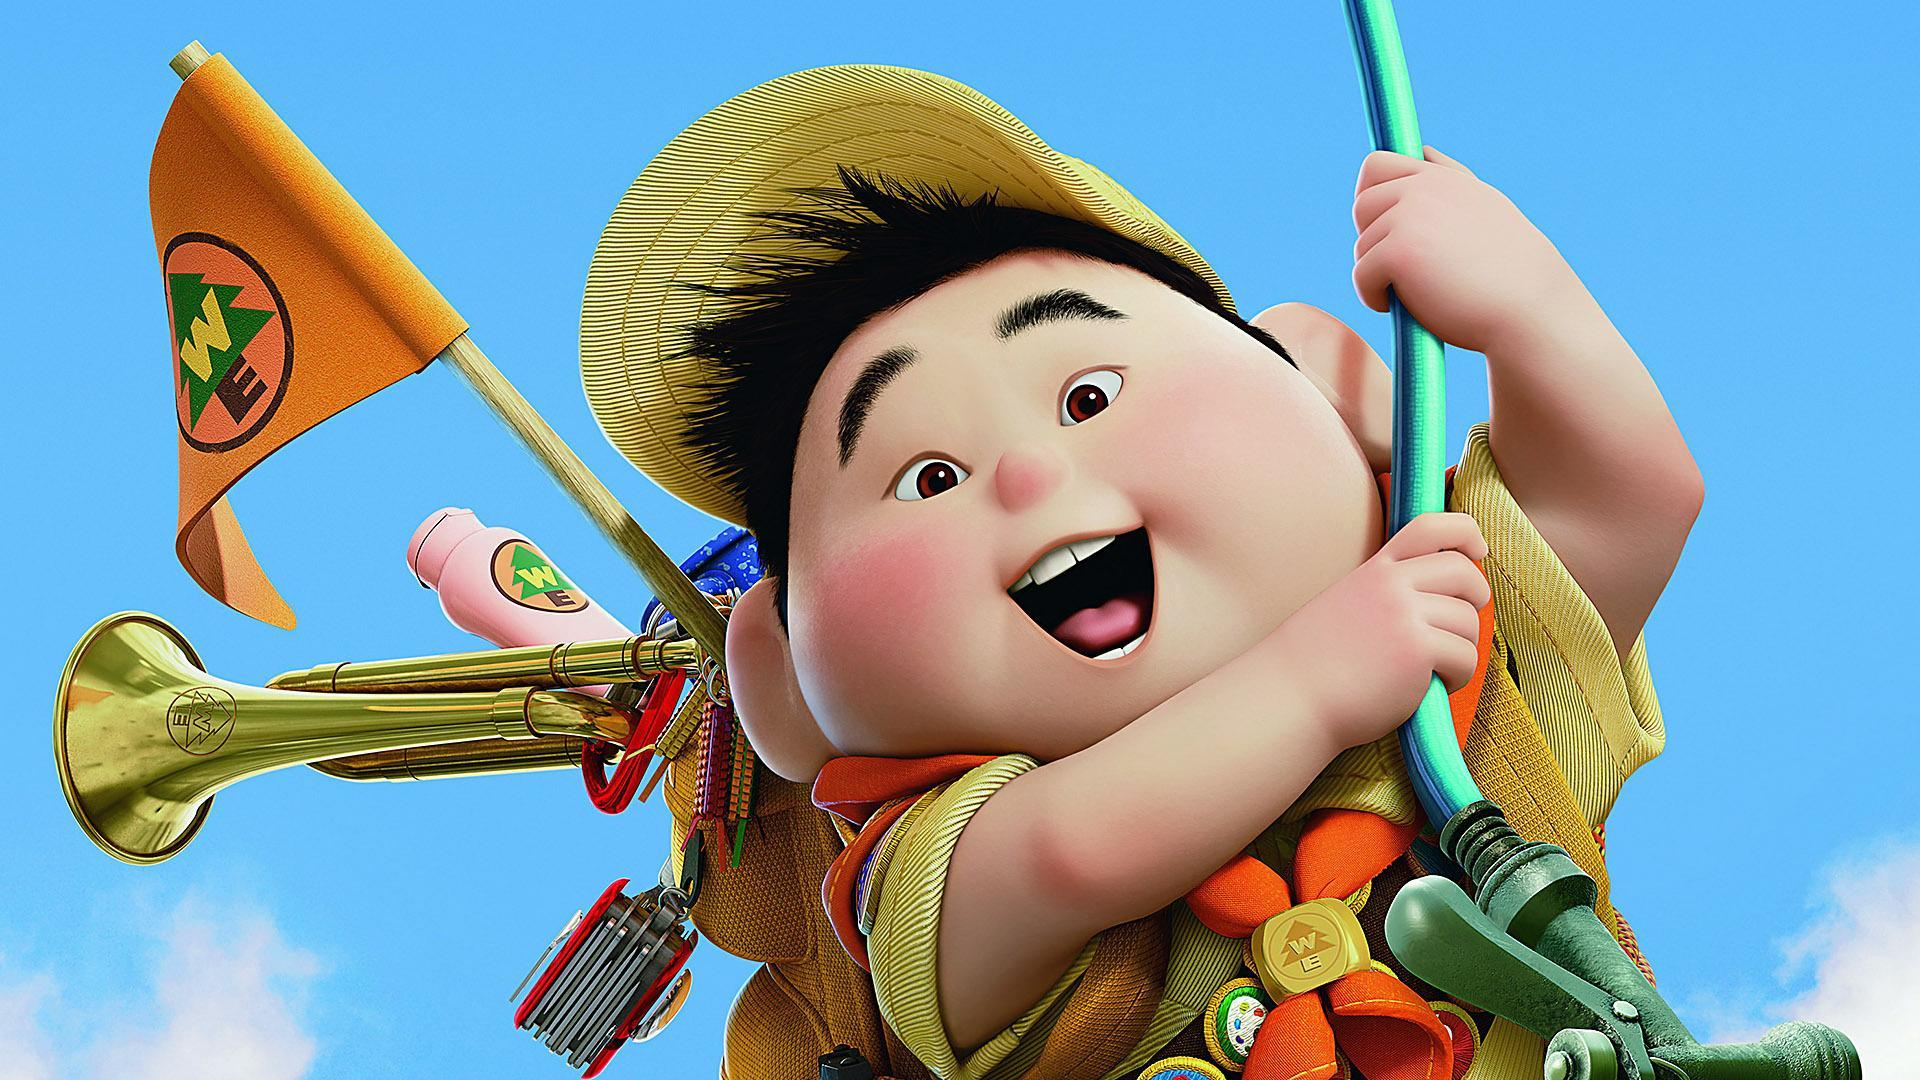 Boytscout- image courtesy: Pixar.